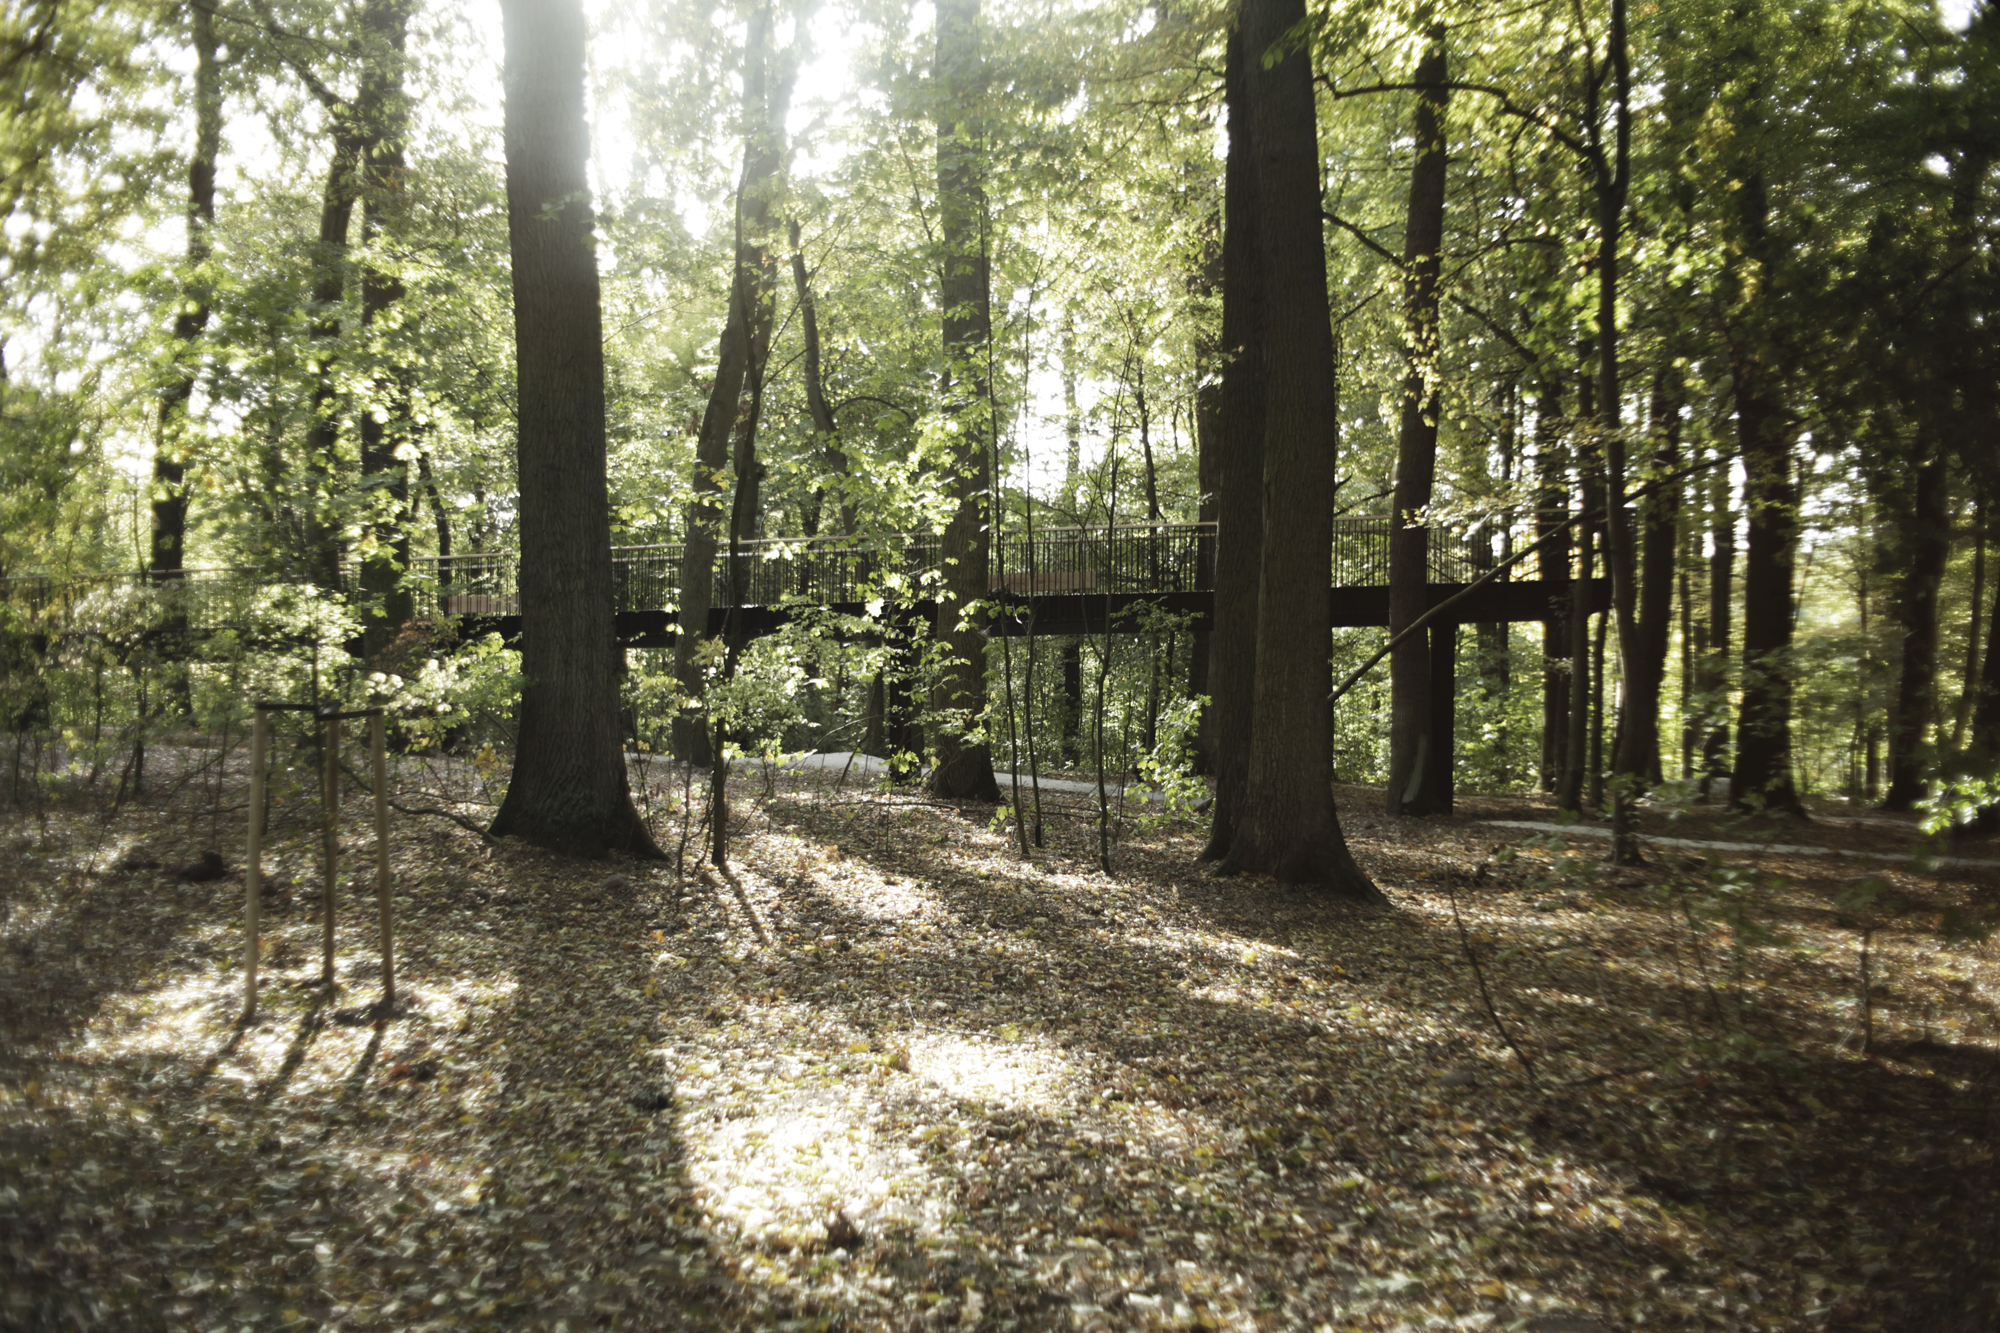 2020_Landscape_Architecture_Lab_Iława Forest_Category B